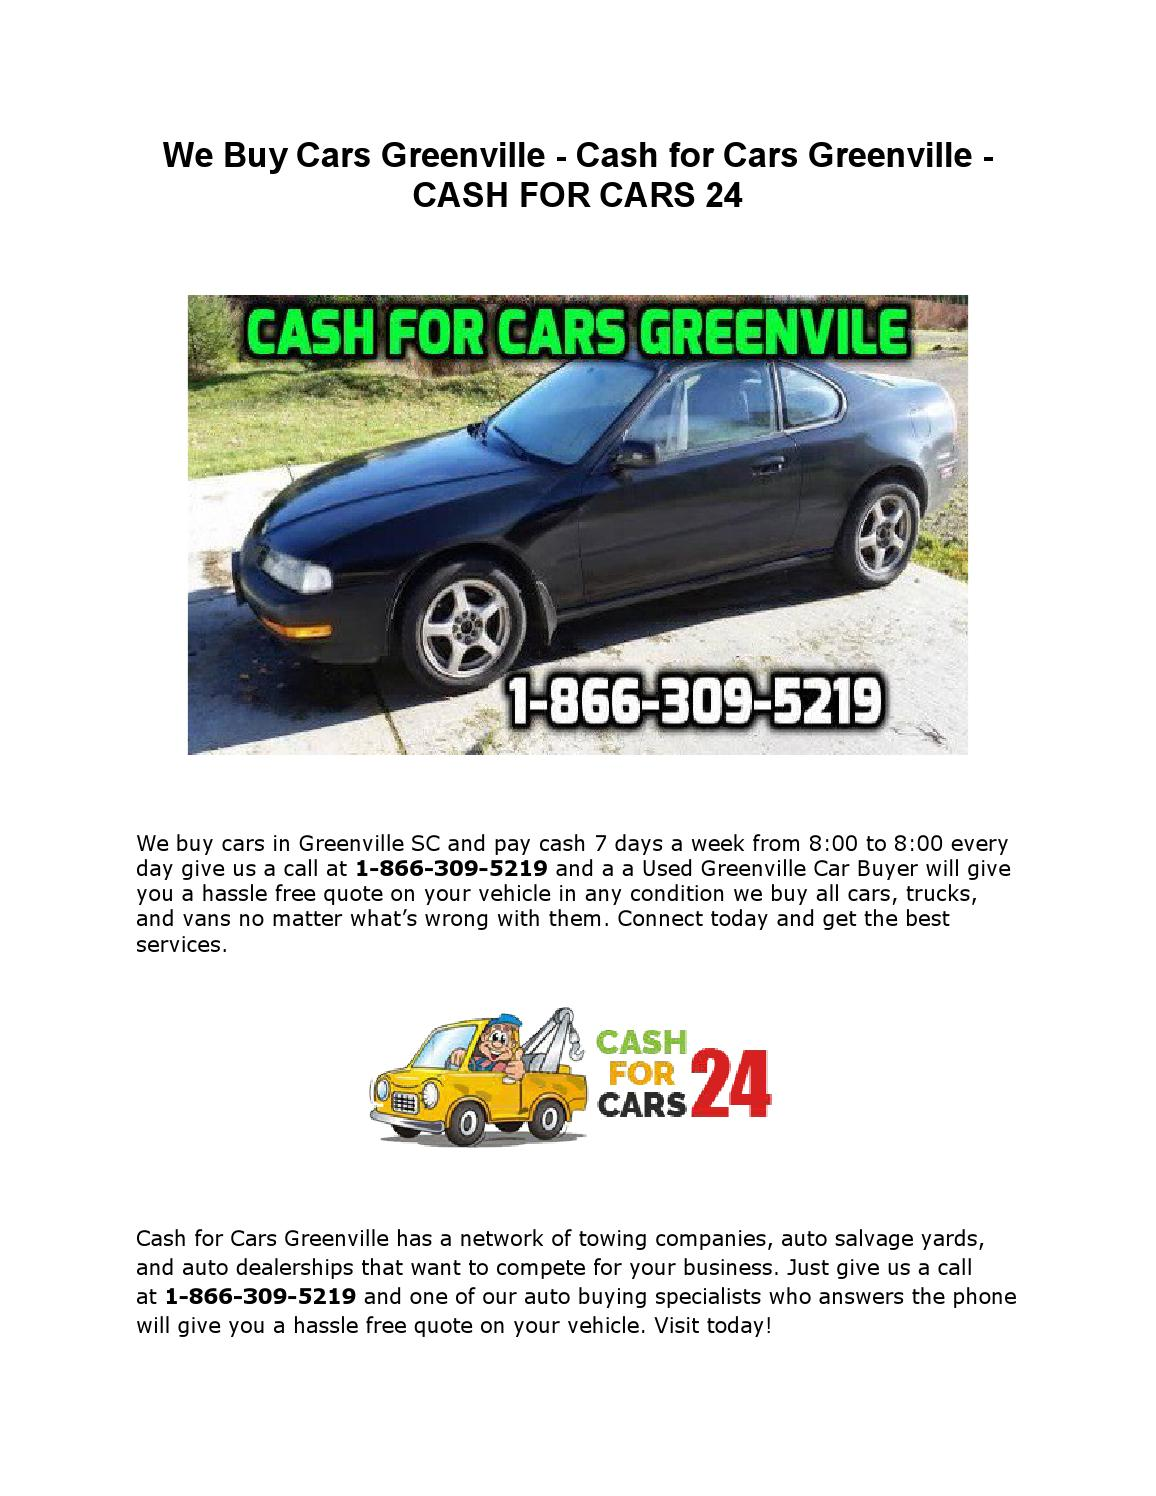 Sell my car greenville we buy cars greenville by Carsgreenville - issuu